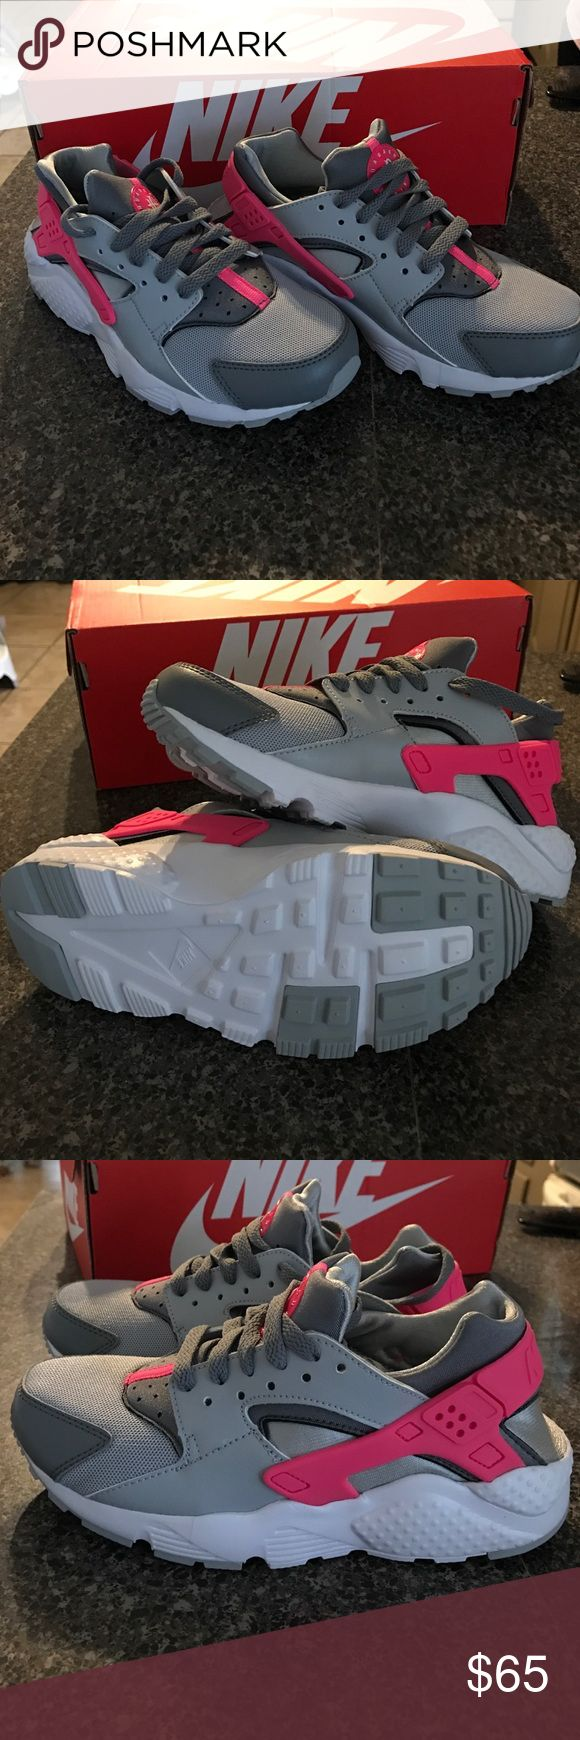 Nike Huarache Run size 4y Pink and Grey Nike Huarache Run for girls in a size 4y, these shoes are brand new with the box! Nike Shoes Sneakers